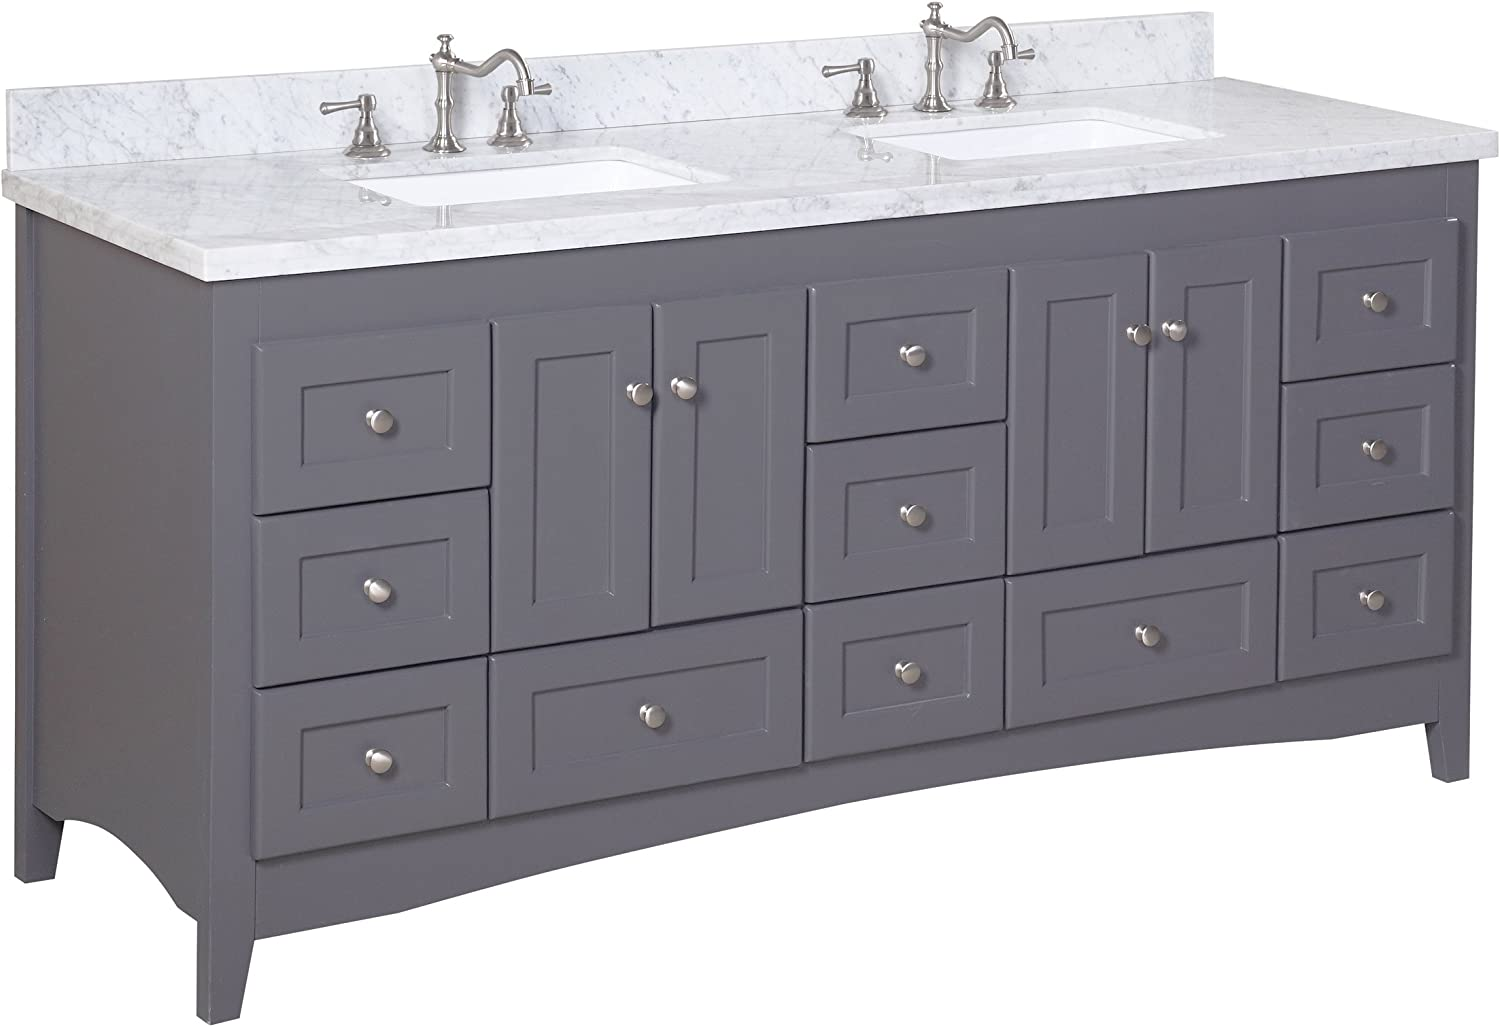 Abbey 72-inch Double Bathroom Vanity Carrara Charcoal Gray Includes Gray Shaker Style Cabinet with Soft Close Drawers, Authentic Italian Carrara Marble Top, and Rectangular Ceramic Sinks